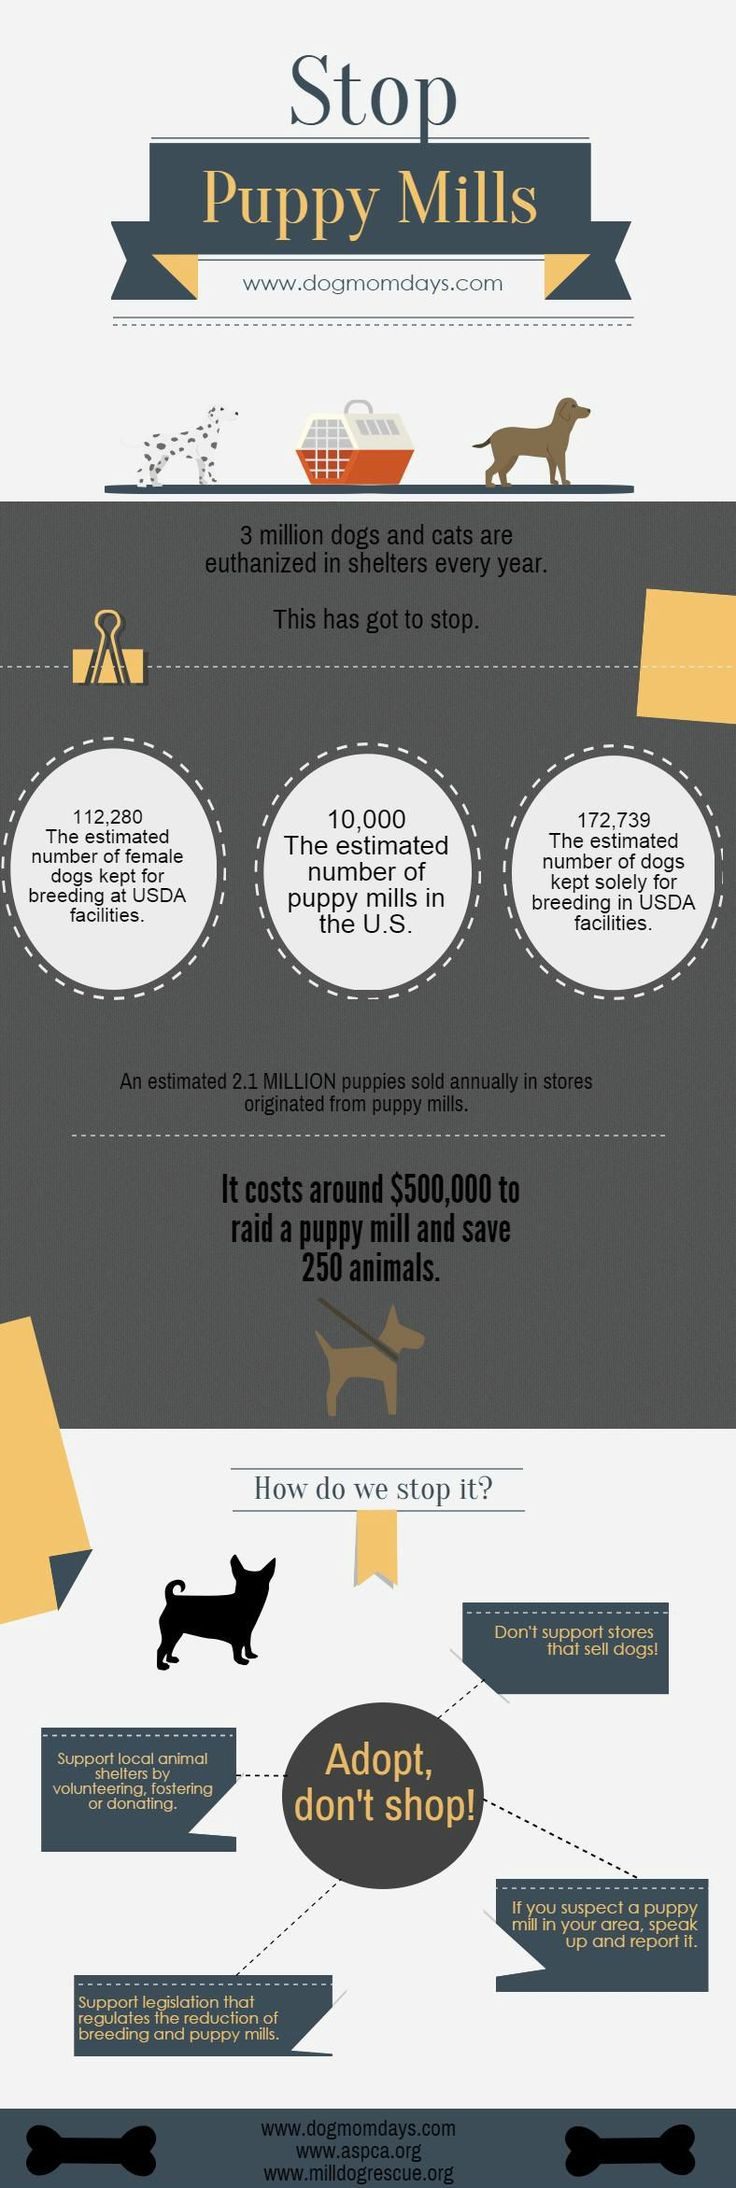 Stop puppy mills! Adopt, don't shop! Puppy mill facts and statistics. Animal Rescue | Dog Rescue | Dog Adoption | Rescue Mom